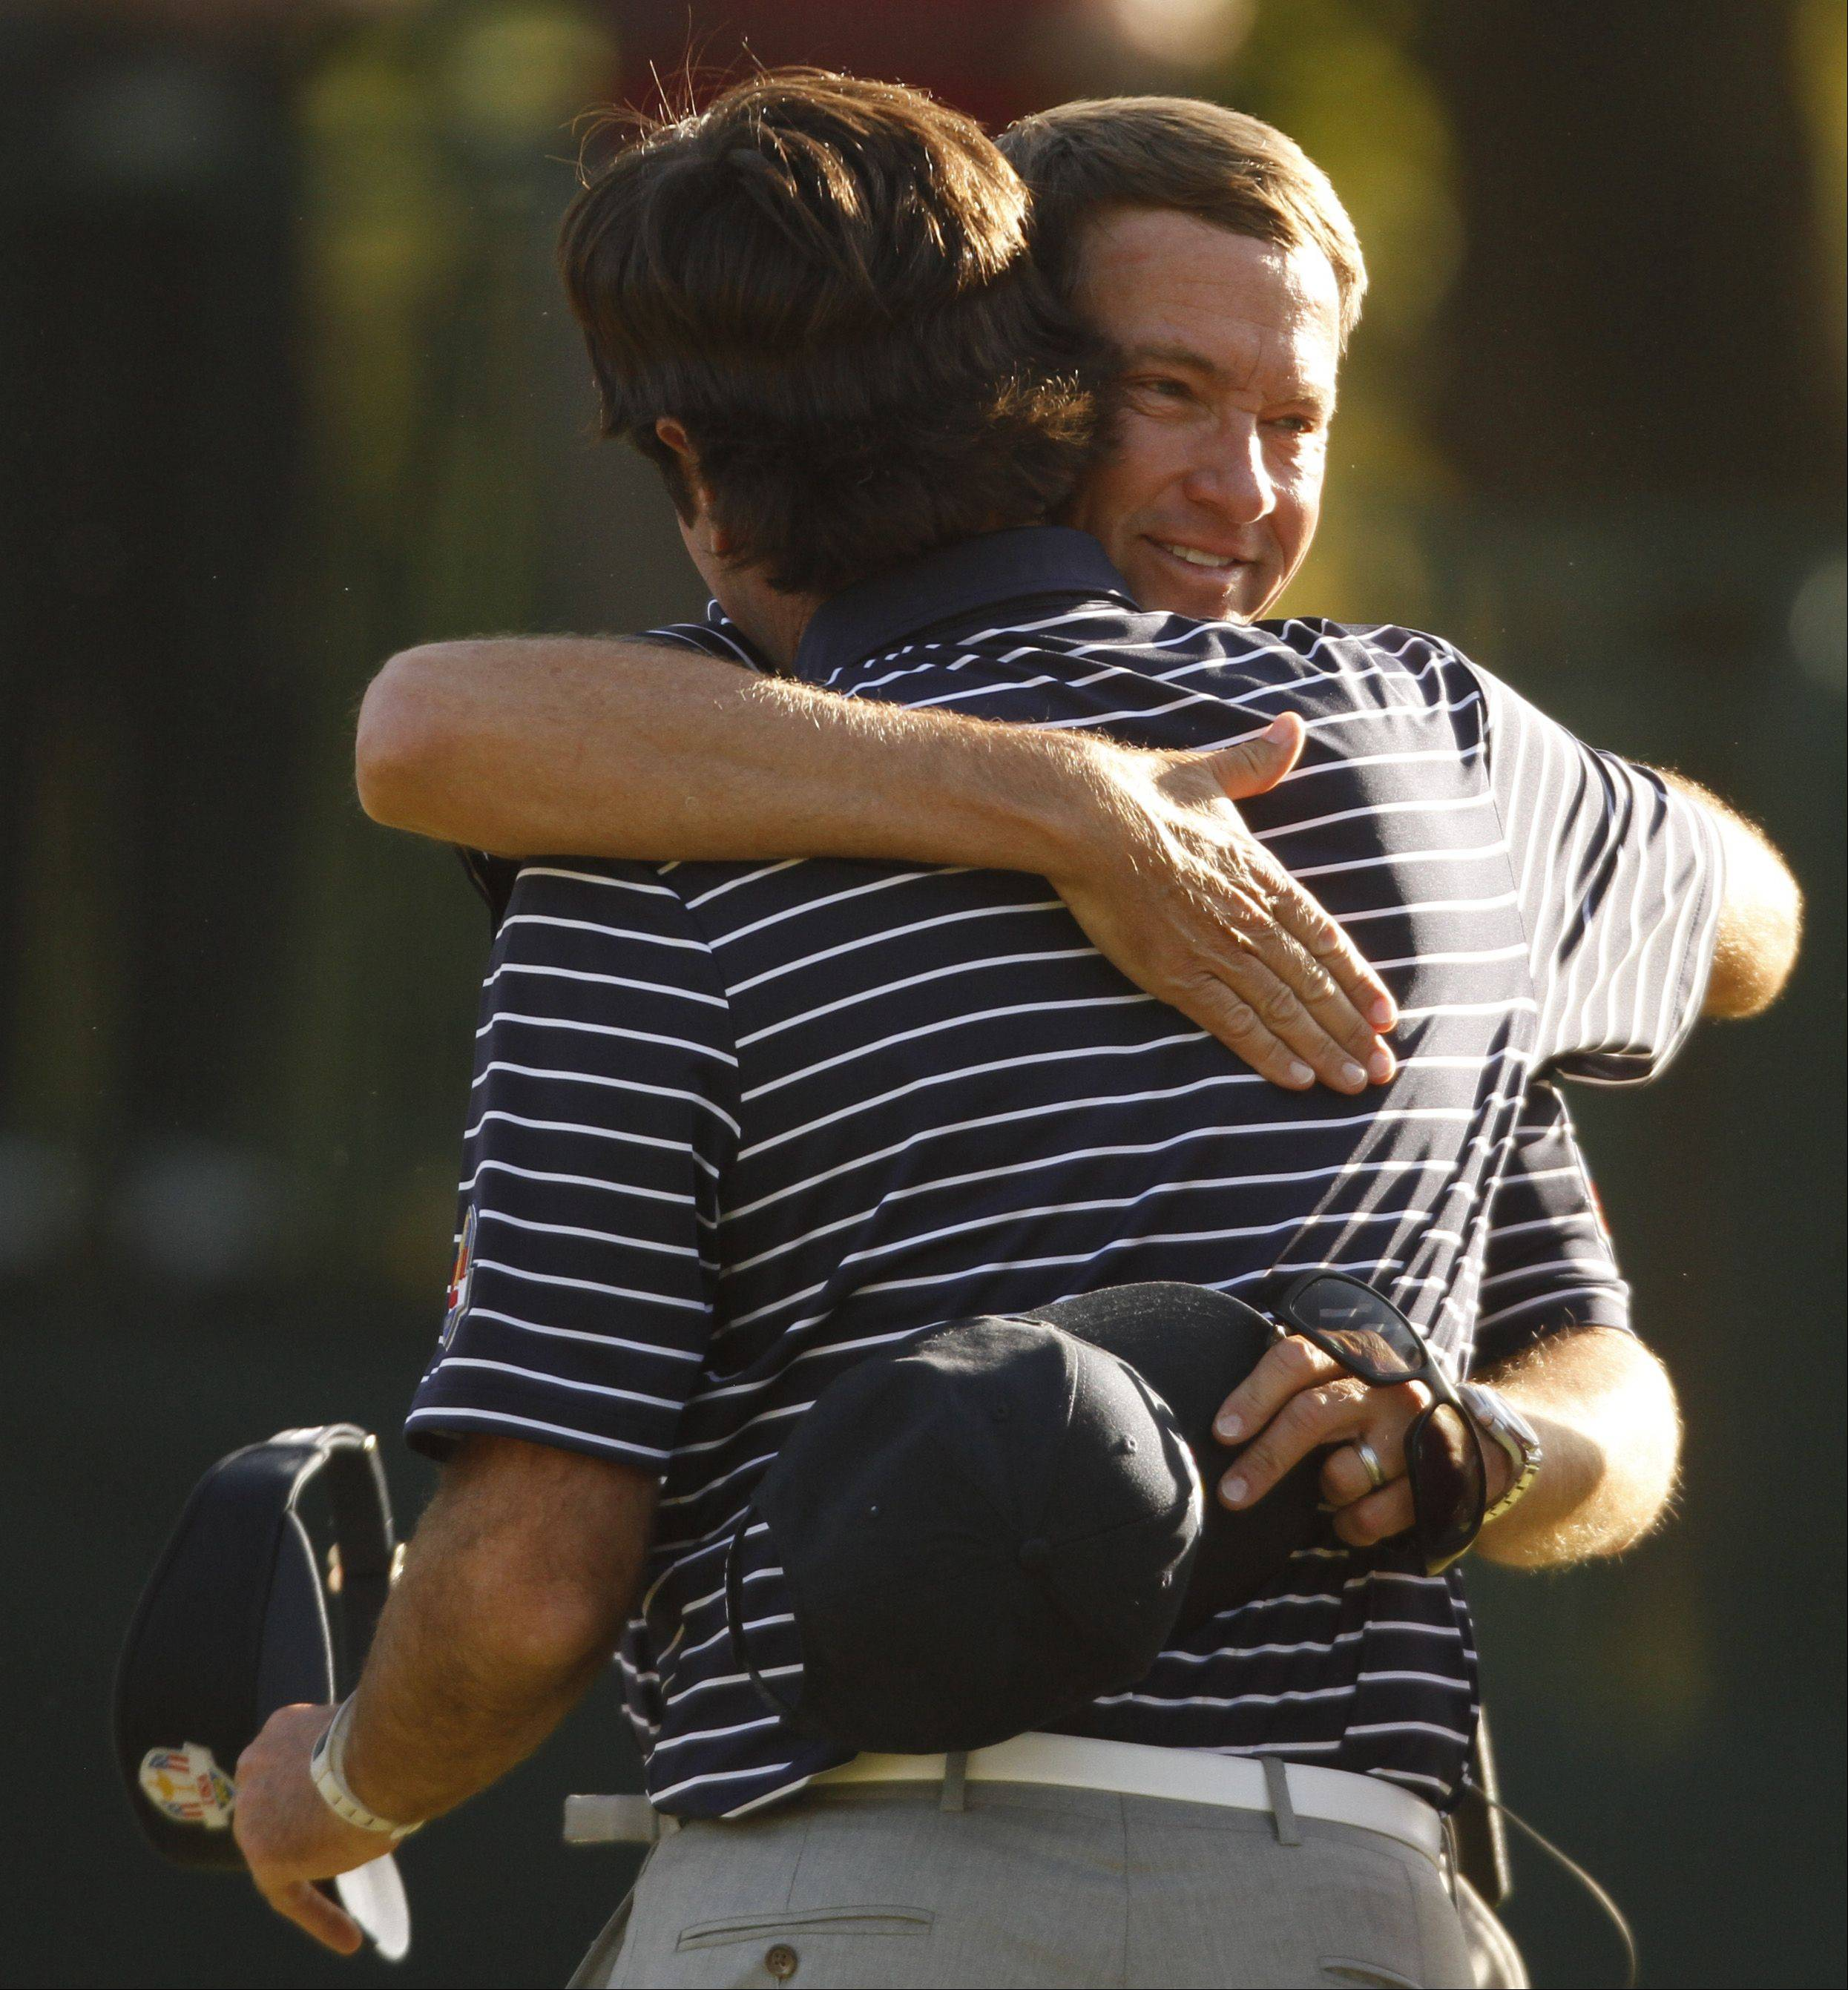 Team USA captain Davis Love III hugs Bubba Watson after Watson and teammate Webb Simpson won their match Saturday afternoon.